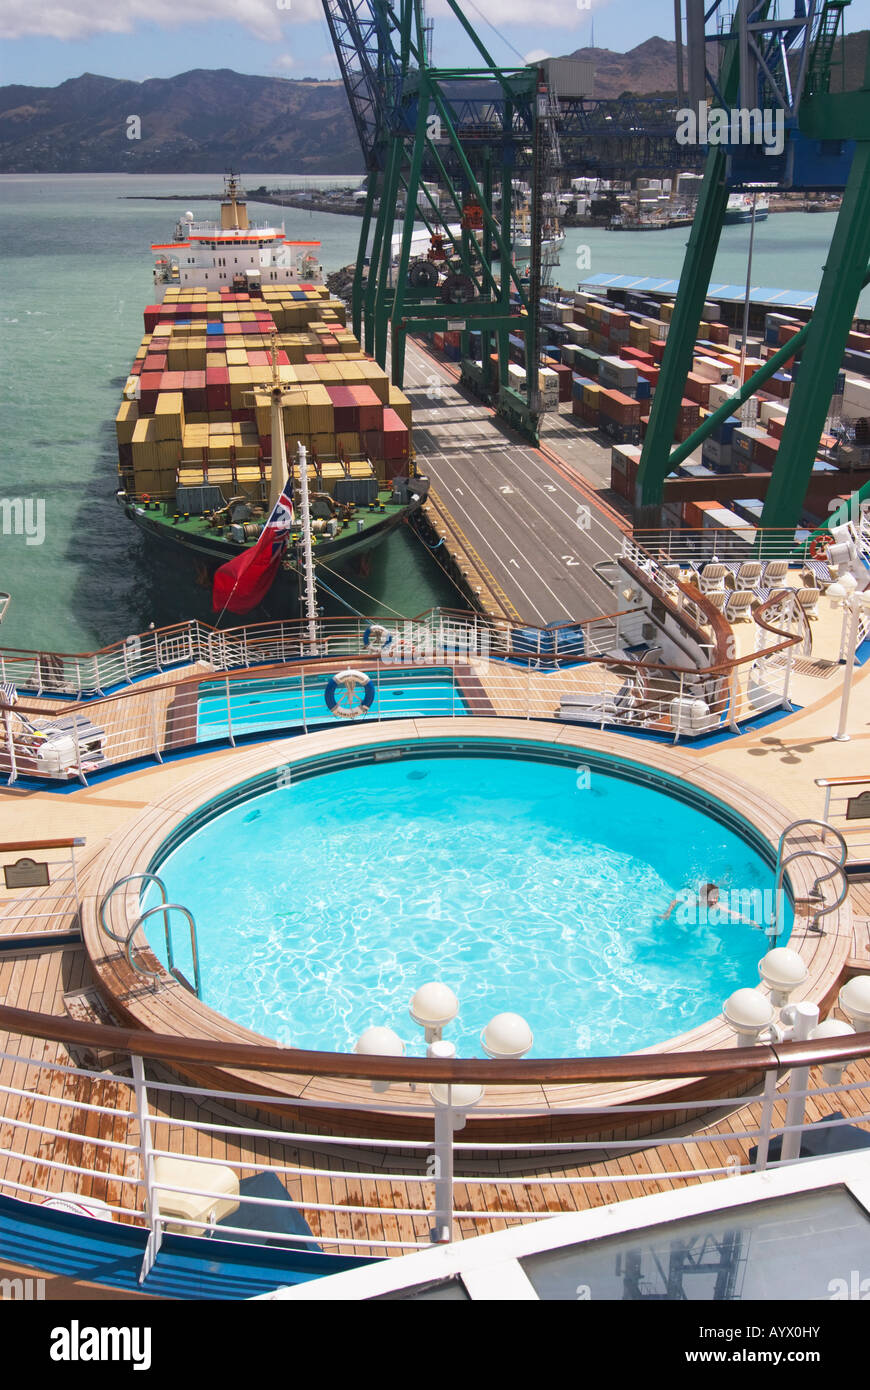 Aft Decks Of A Cruise Ship With Swimming Pool And A Container Ship Stock Photo Royalty Free